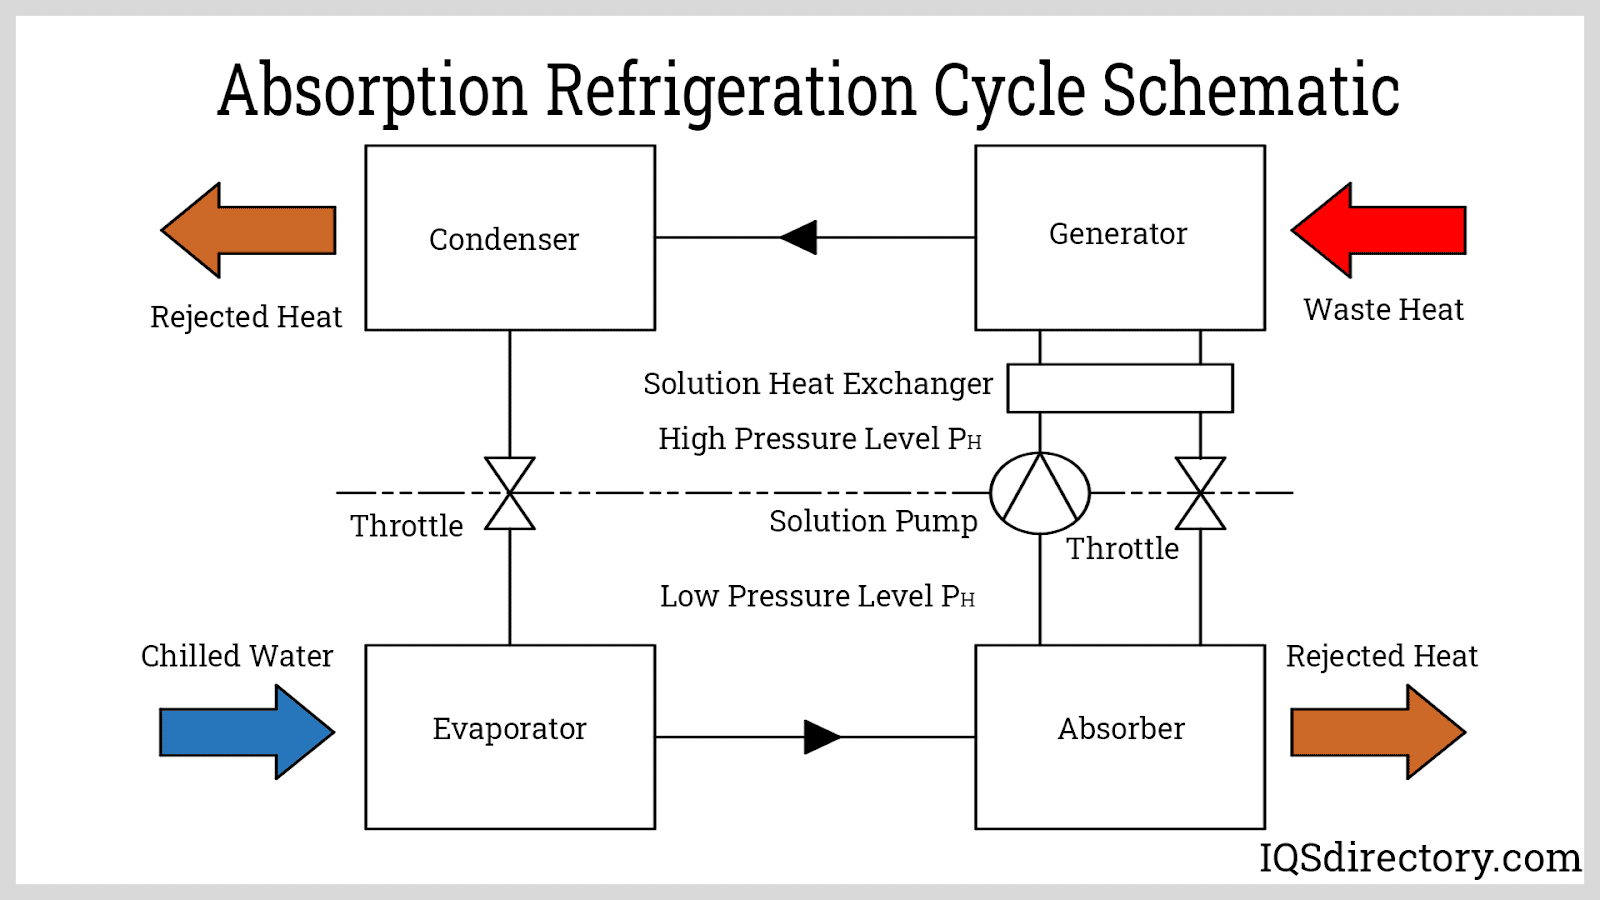 Absorption Refrigeration Cycle Schematic